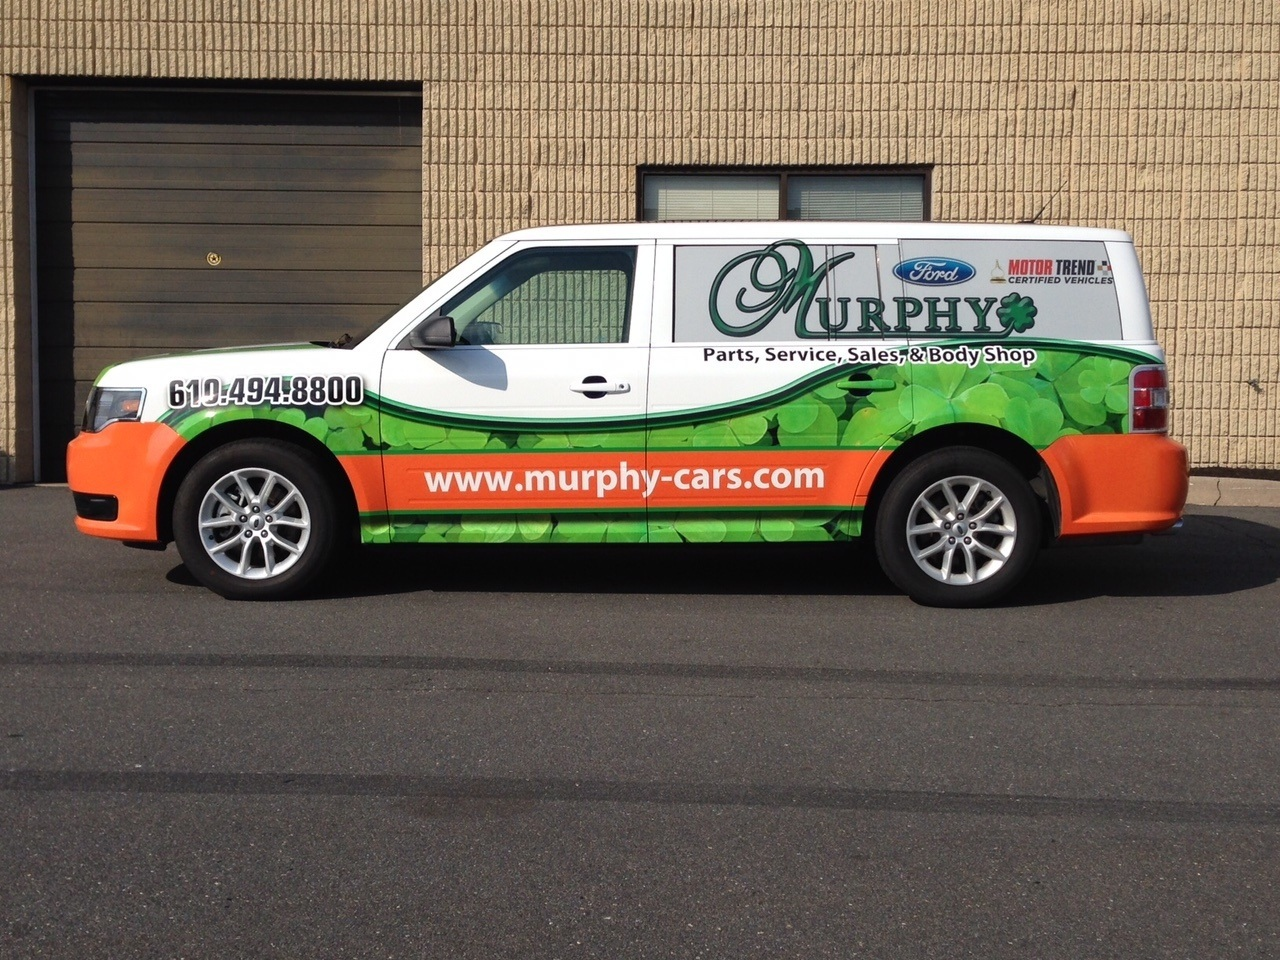 Commercial Vehicle Wraps Lake Bluff Lake Forest Chicago